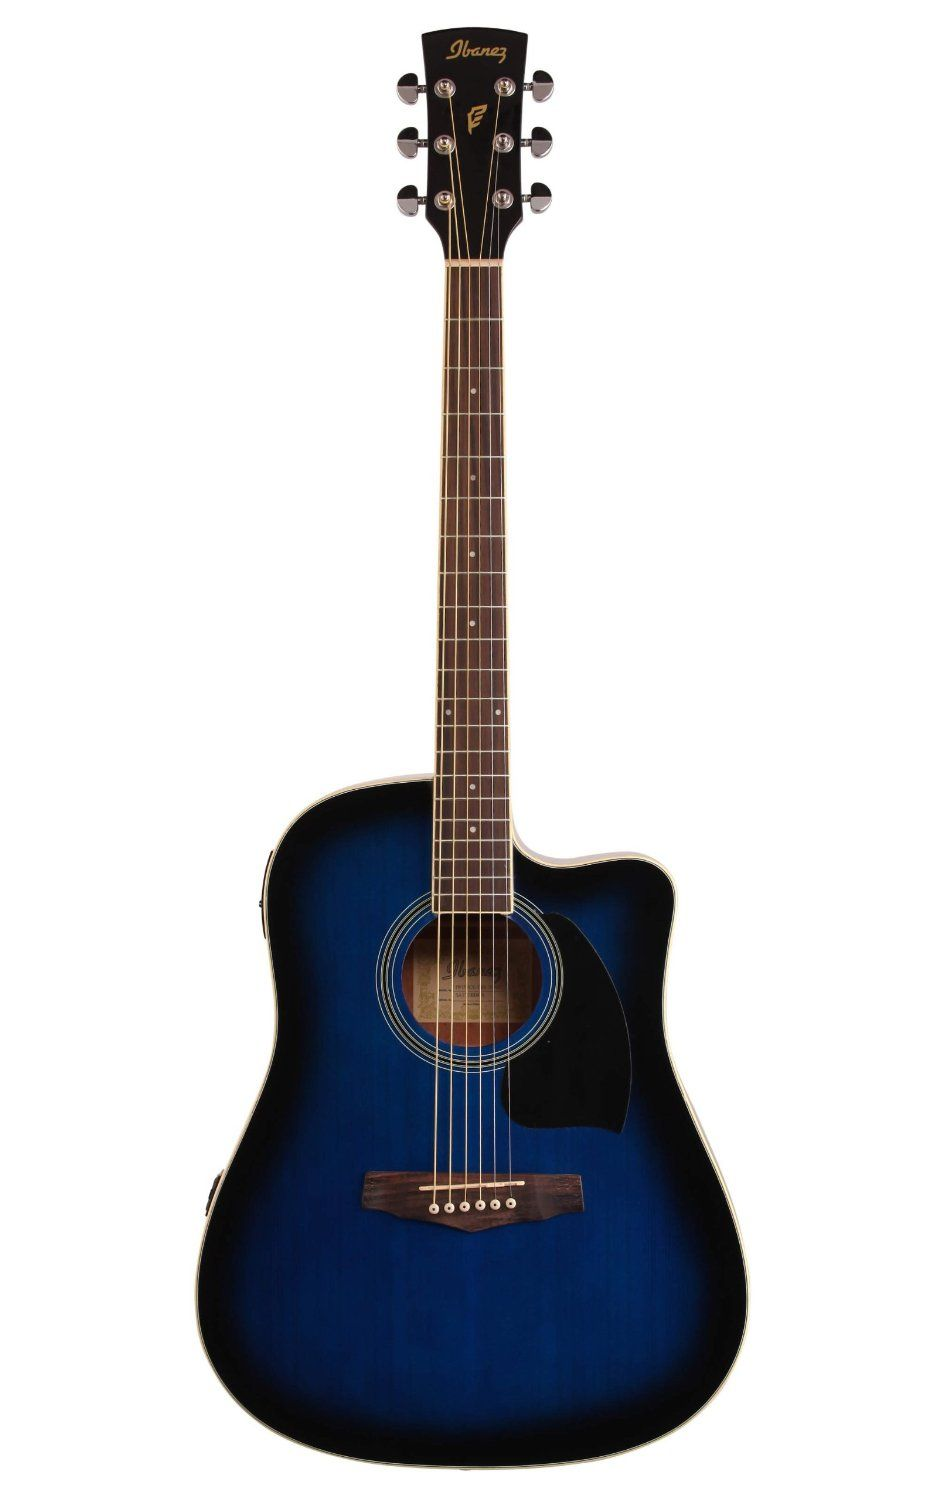 Amazon Com Ibanez Pf15ece Dreadnought Acoustic Electric Guitar Transparent Blue Sunburst Musical Instrumen Acoustic Electric Guitar Acoustic Electric Guitar